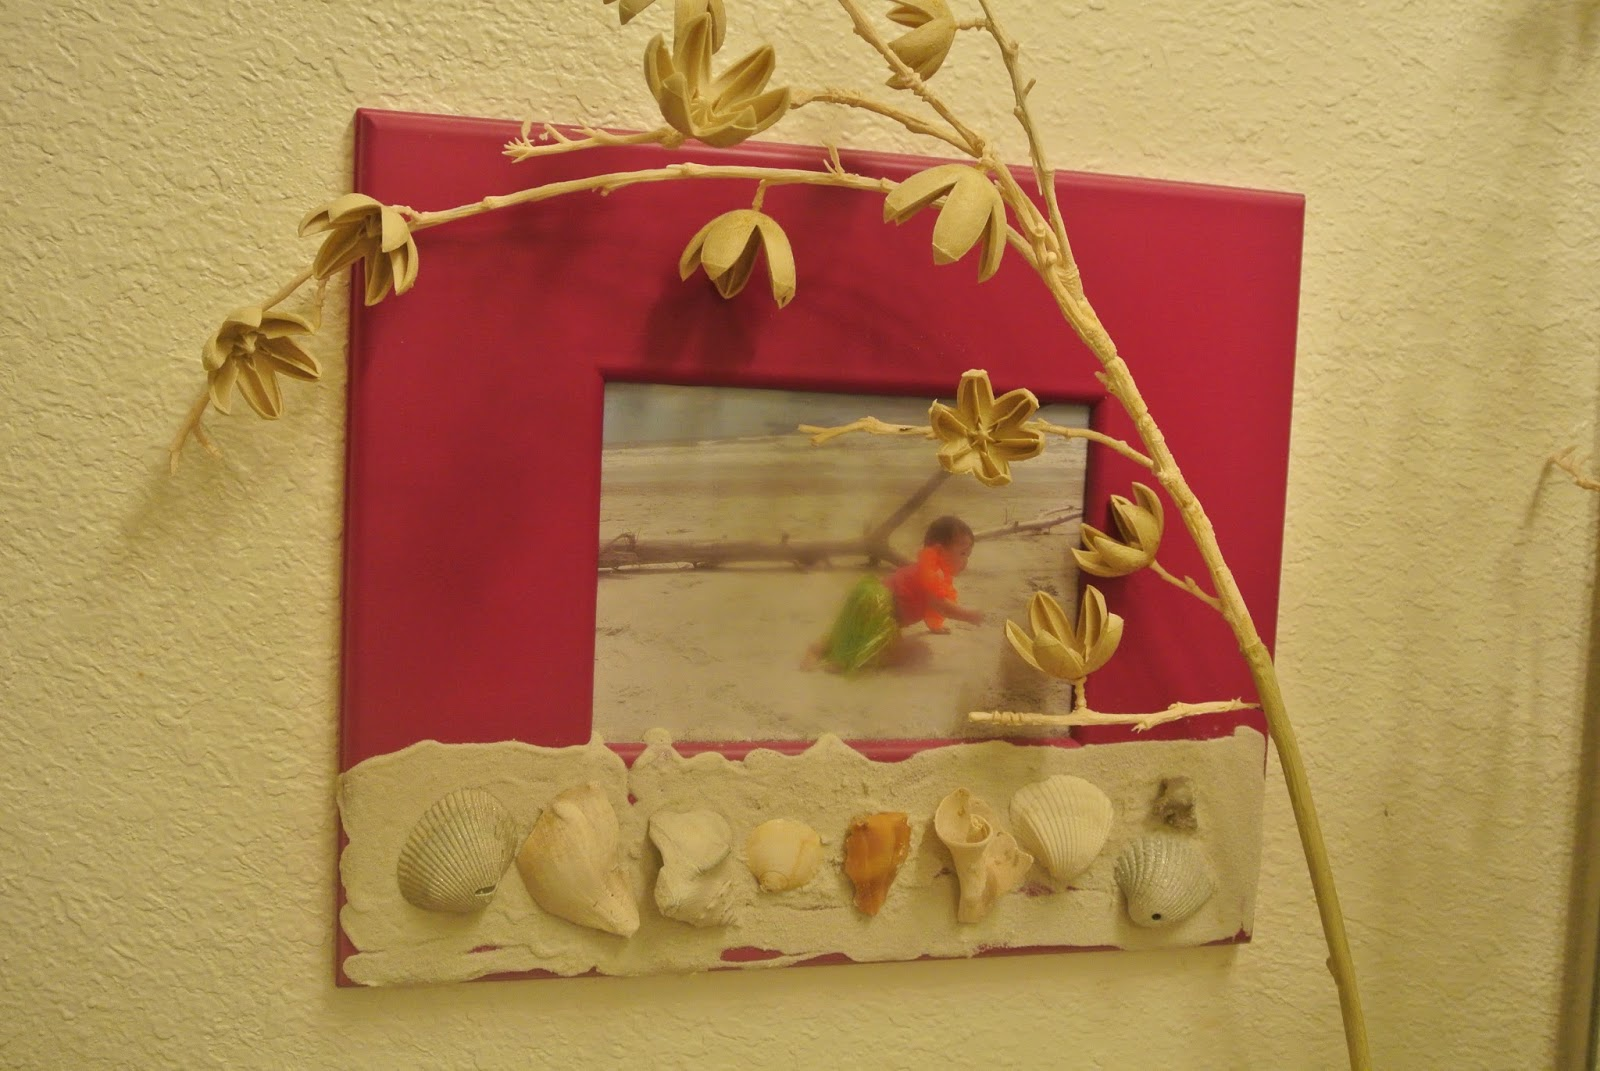 Sea shell home decor, beach shells picture frame